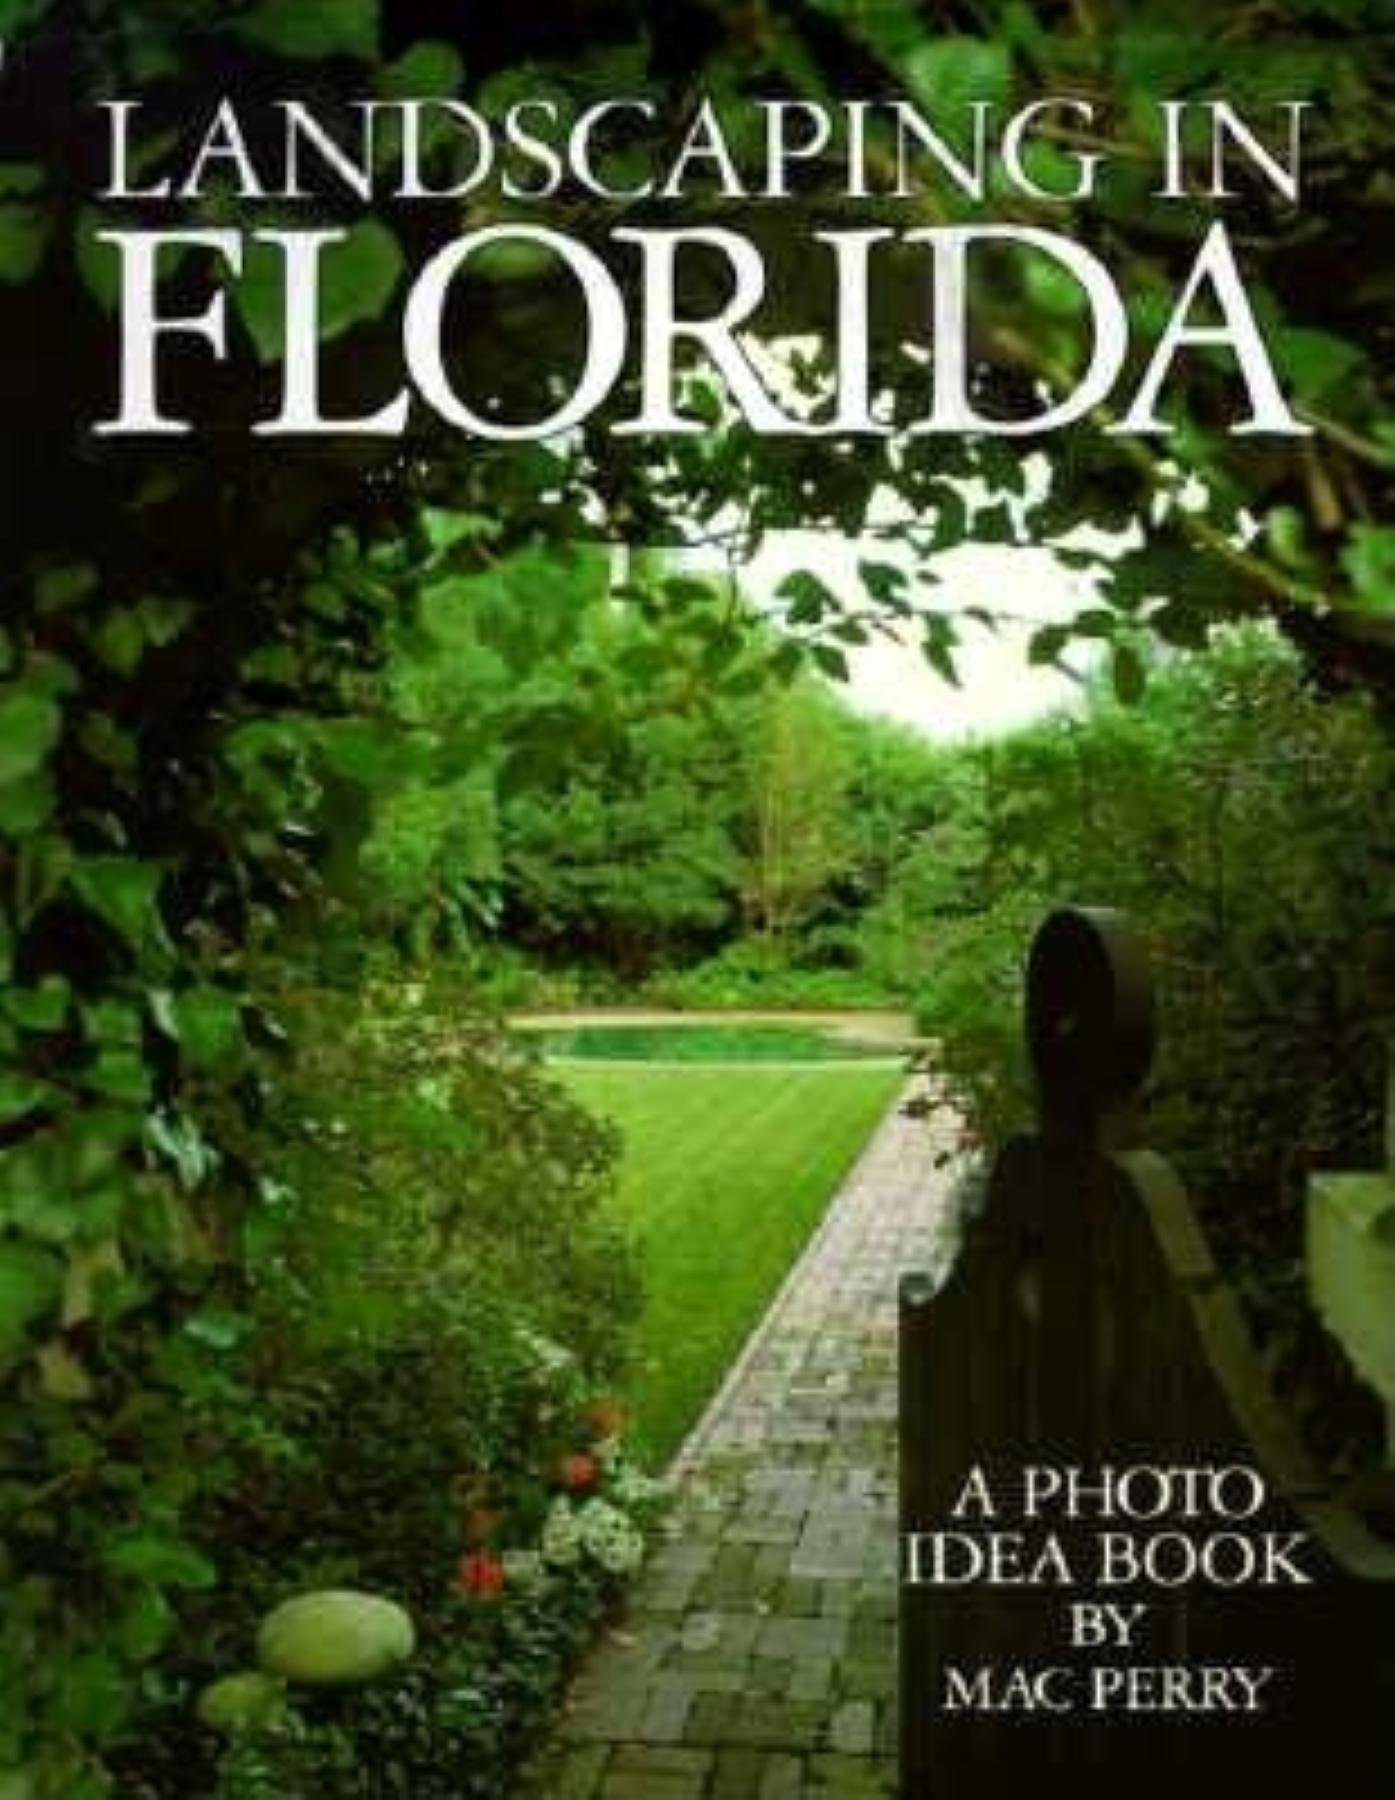 Landscaping in Florida Paperback – October 1, 1993 - Landscaping In Florida: Mac Perry: 9781561640577: Amazon.com: Books